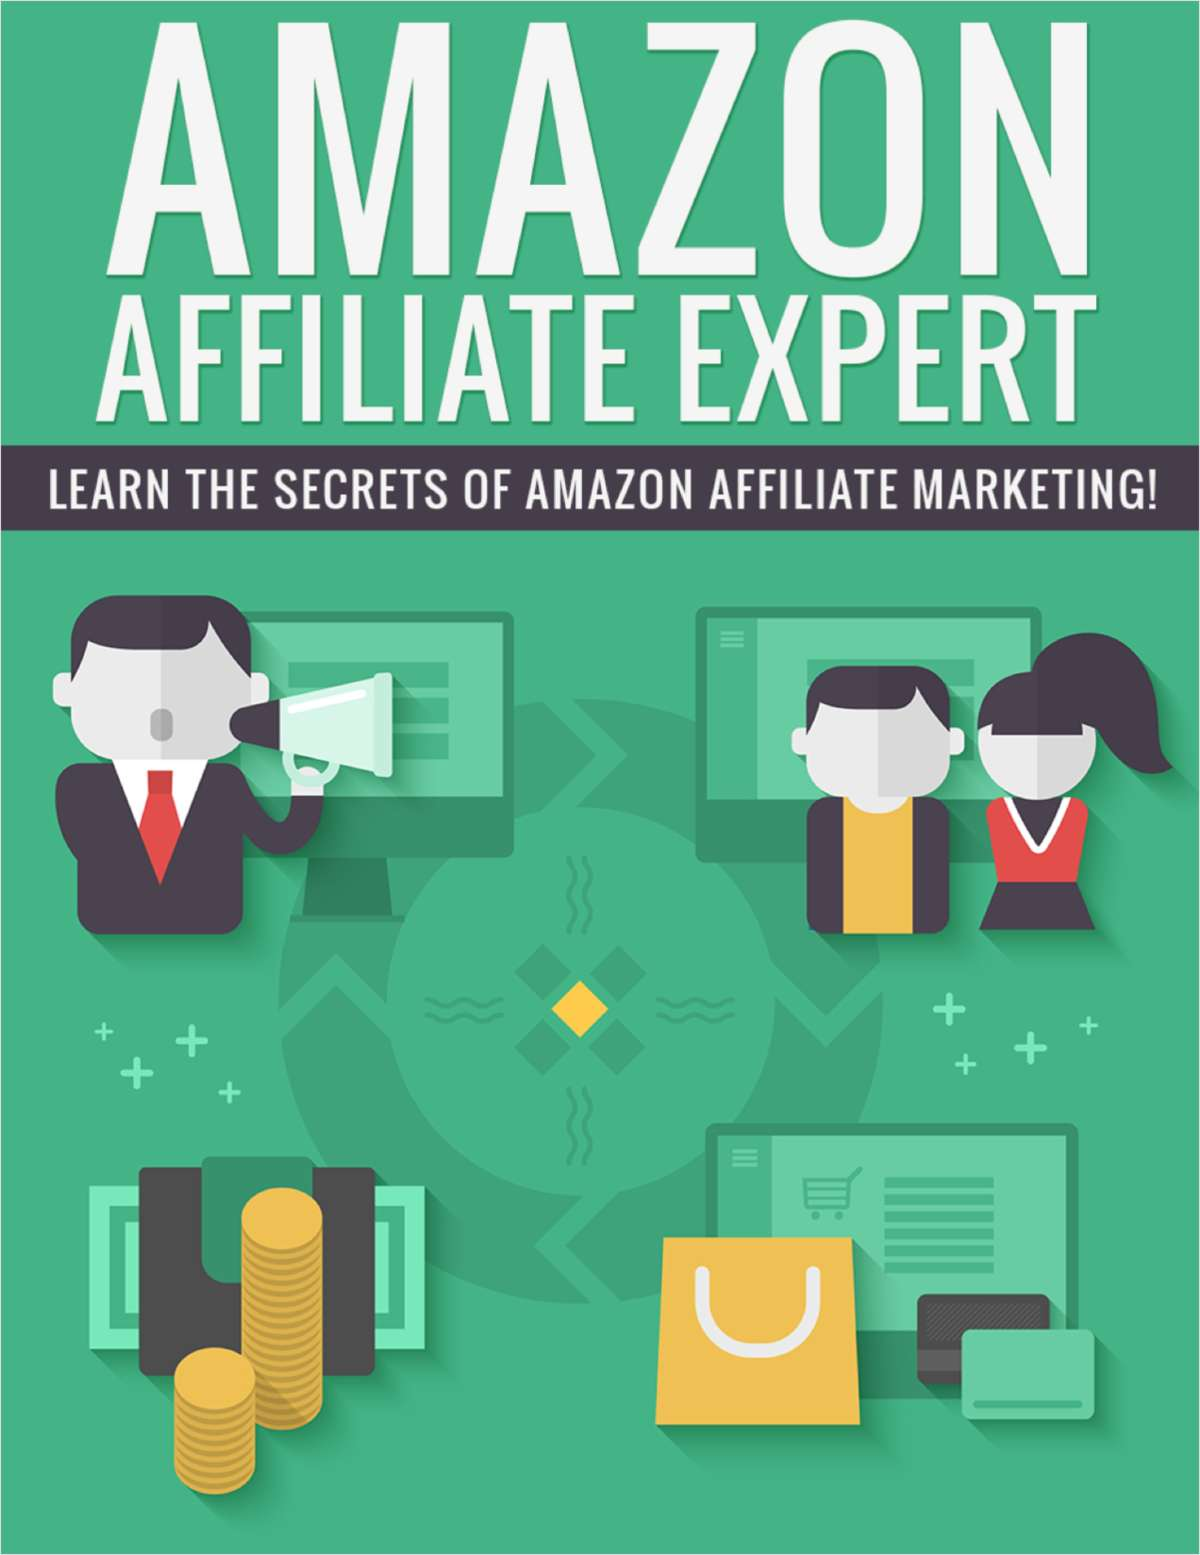 Amazon Affiliate Expert: Learn the Secrets of Amazon Affiliate Marketing